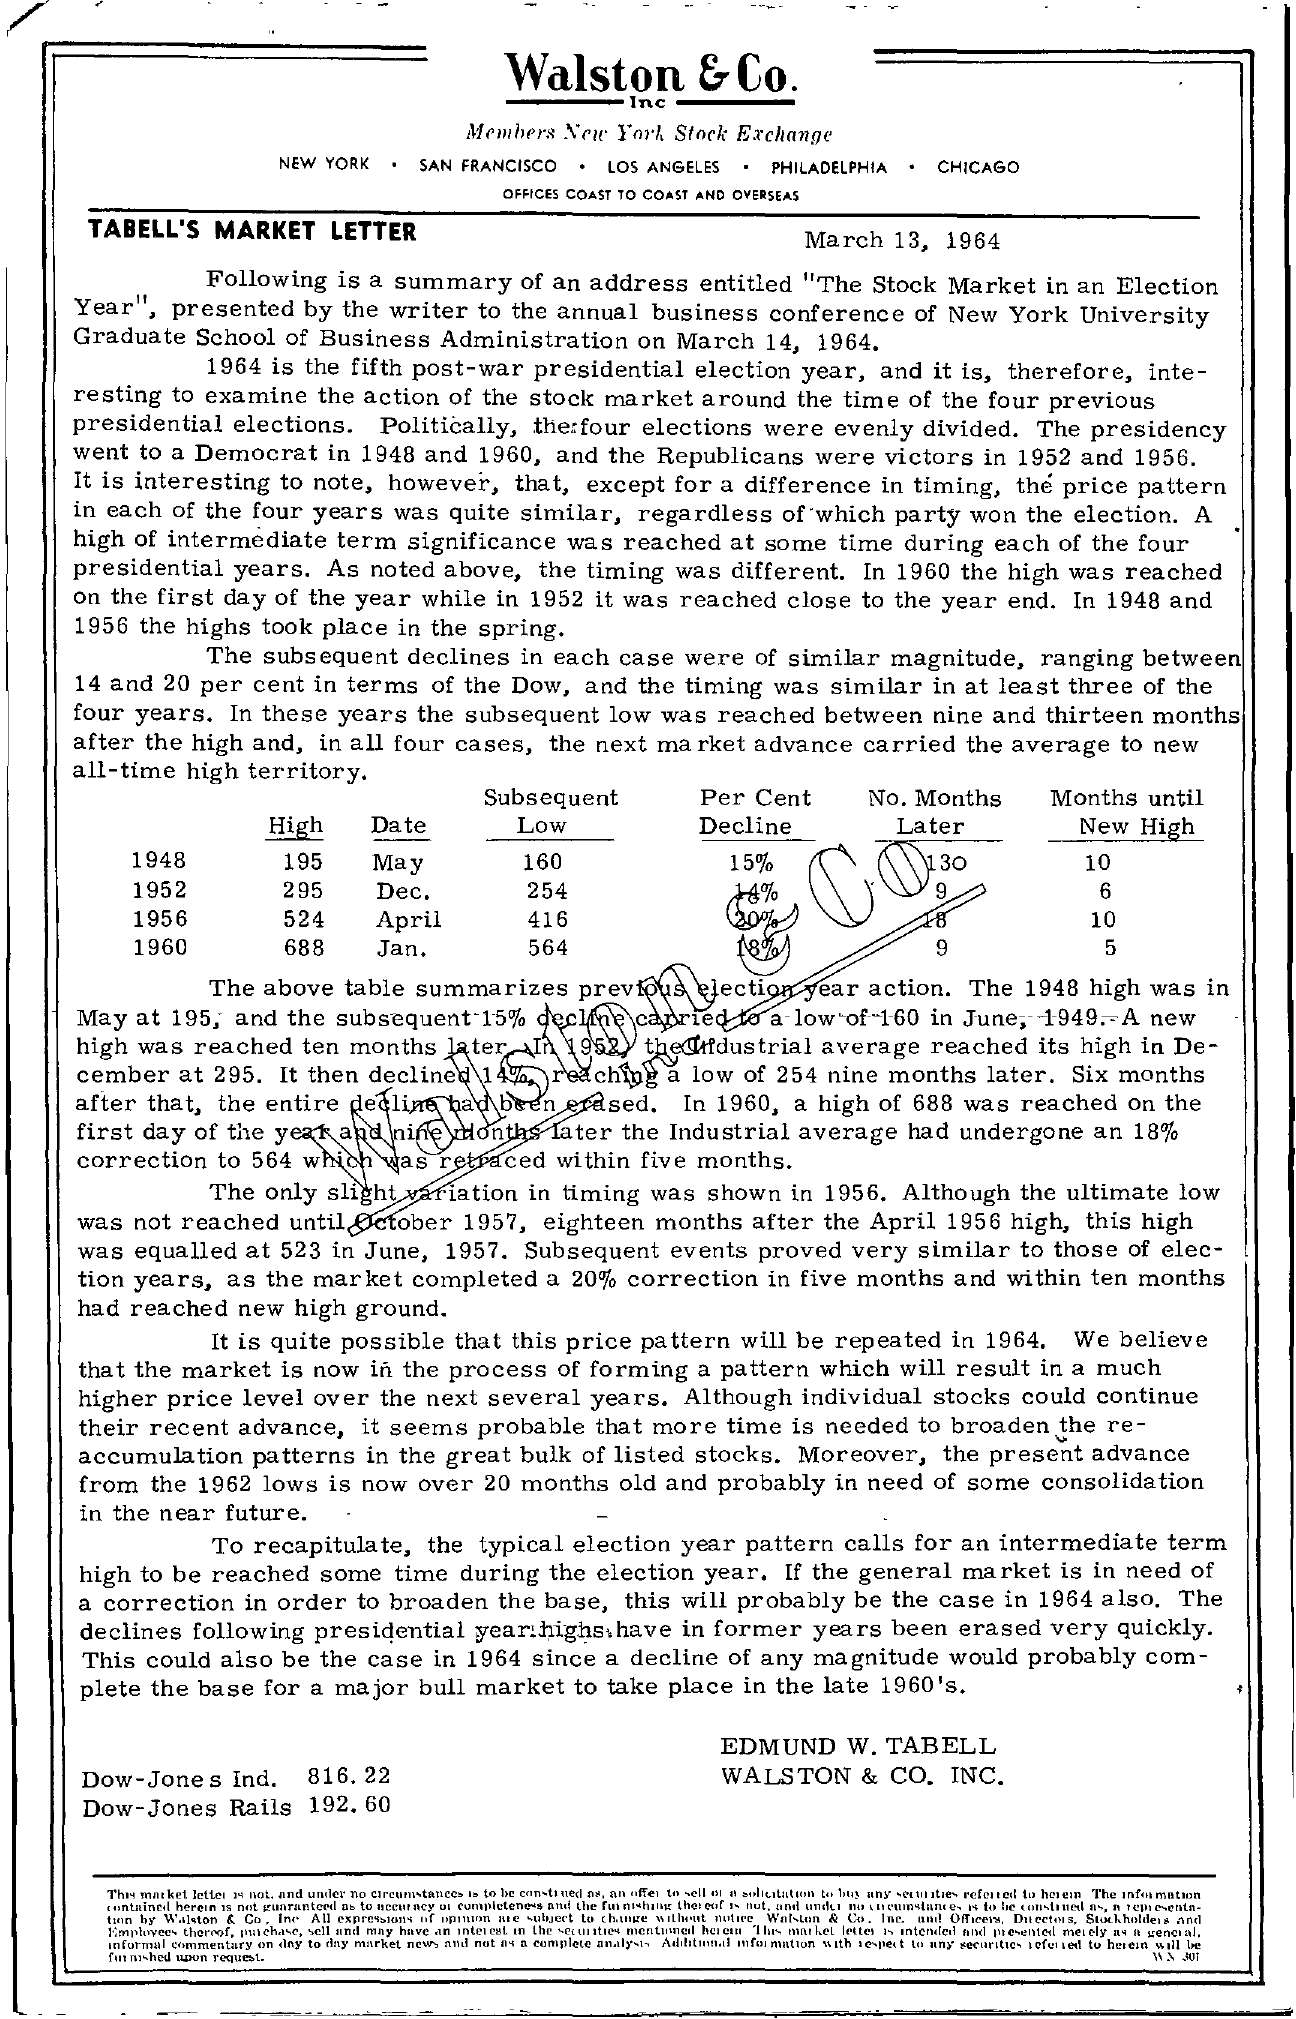 Tabell's Market Letter - March 13, 1964